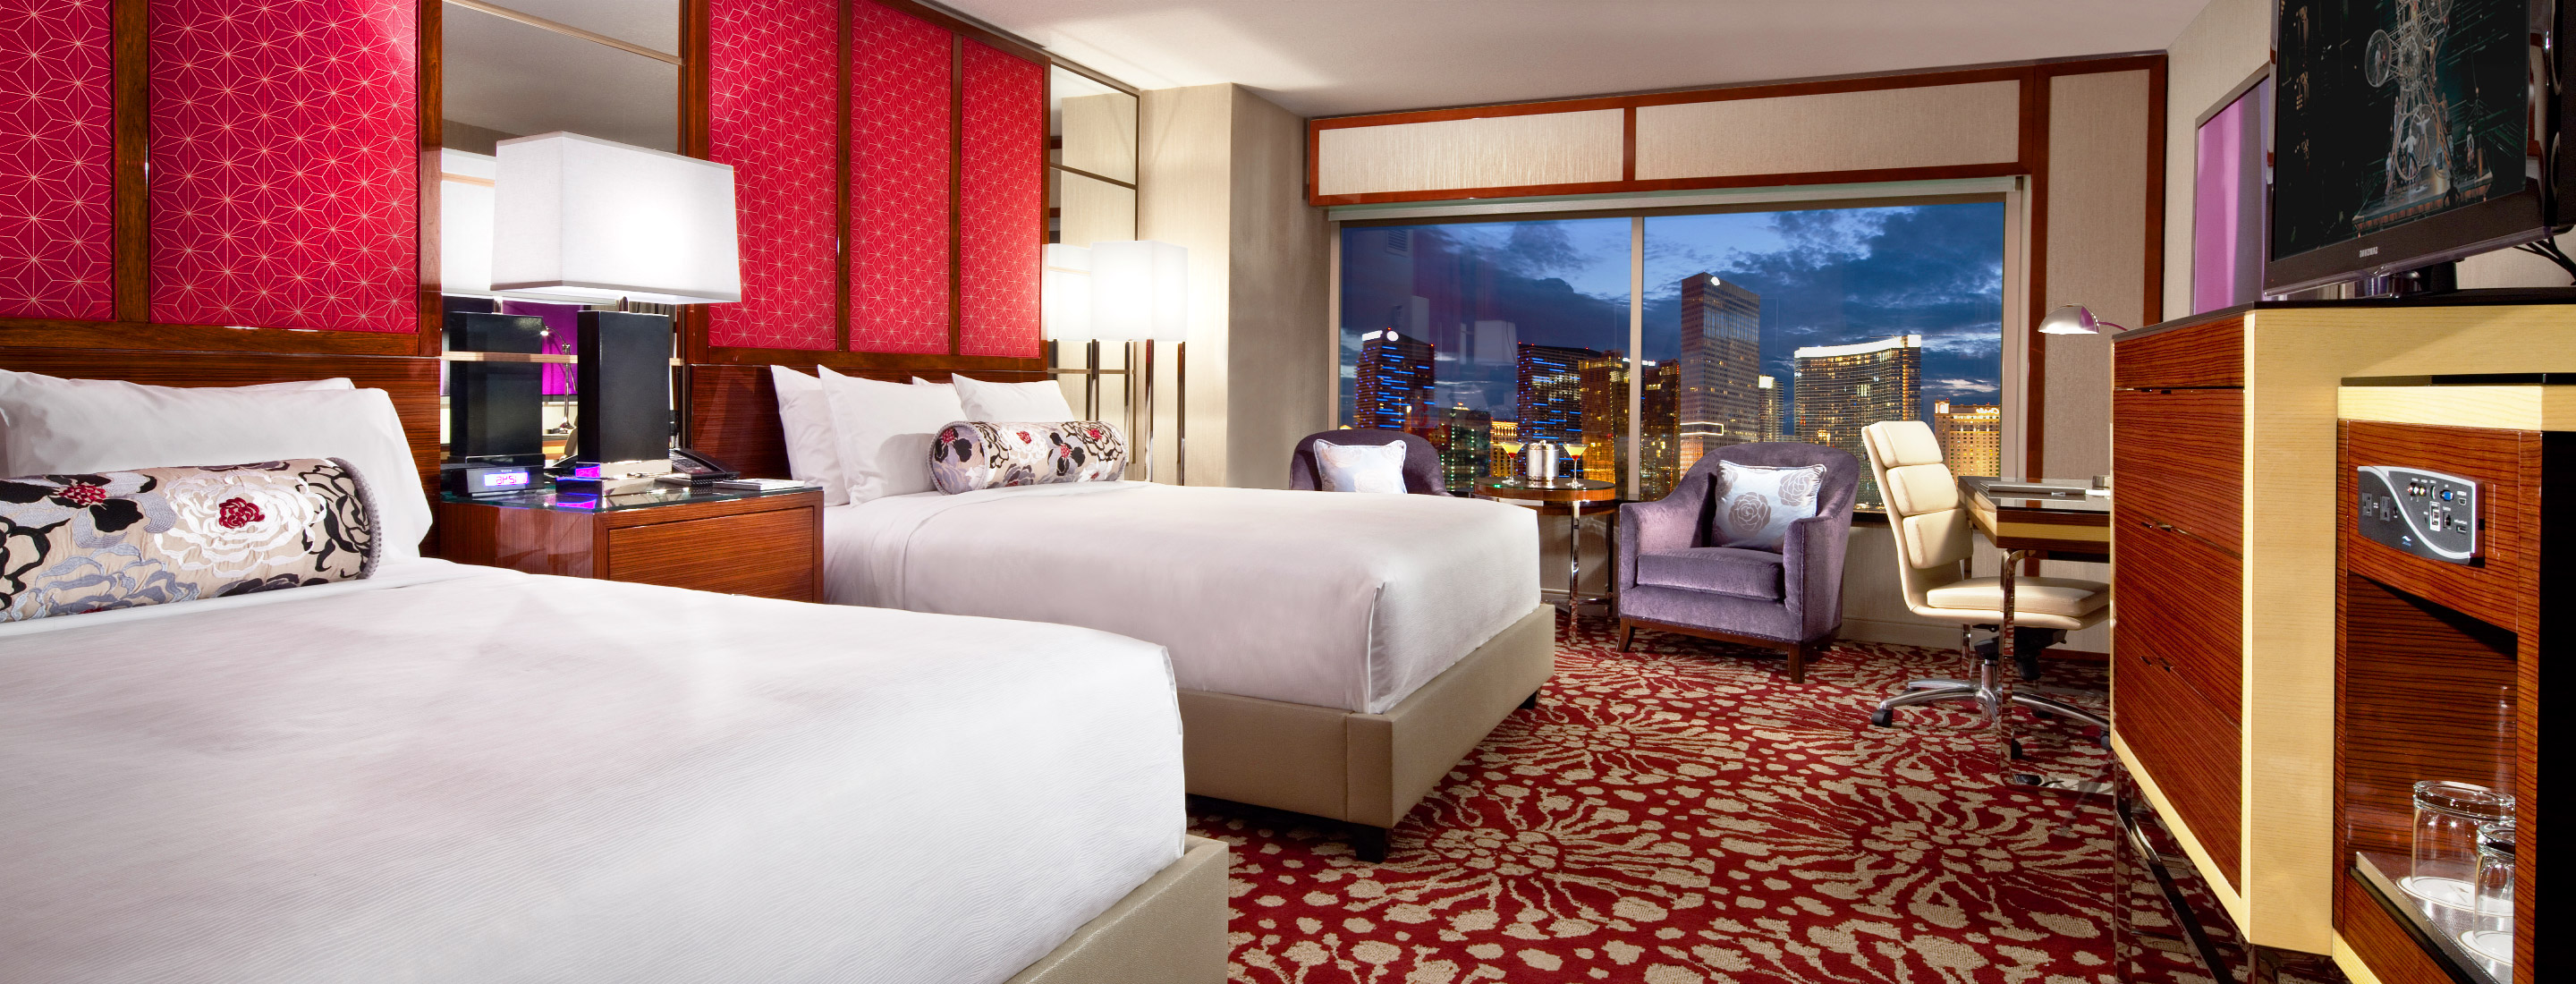 Grand queen strip view mgm grand las vegas - Mgm grand las vegas suites with 2 bedrooms ...